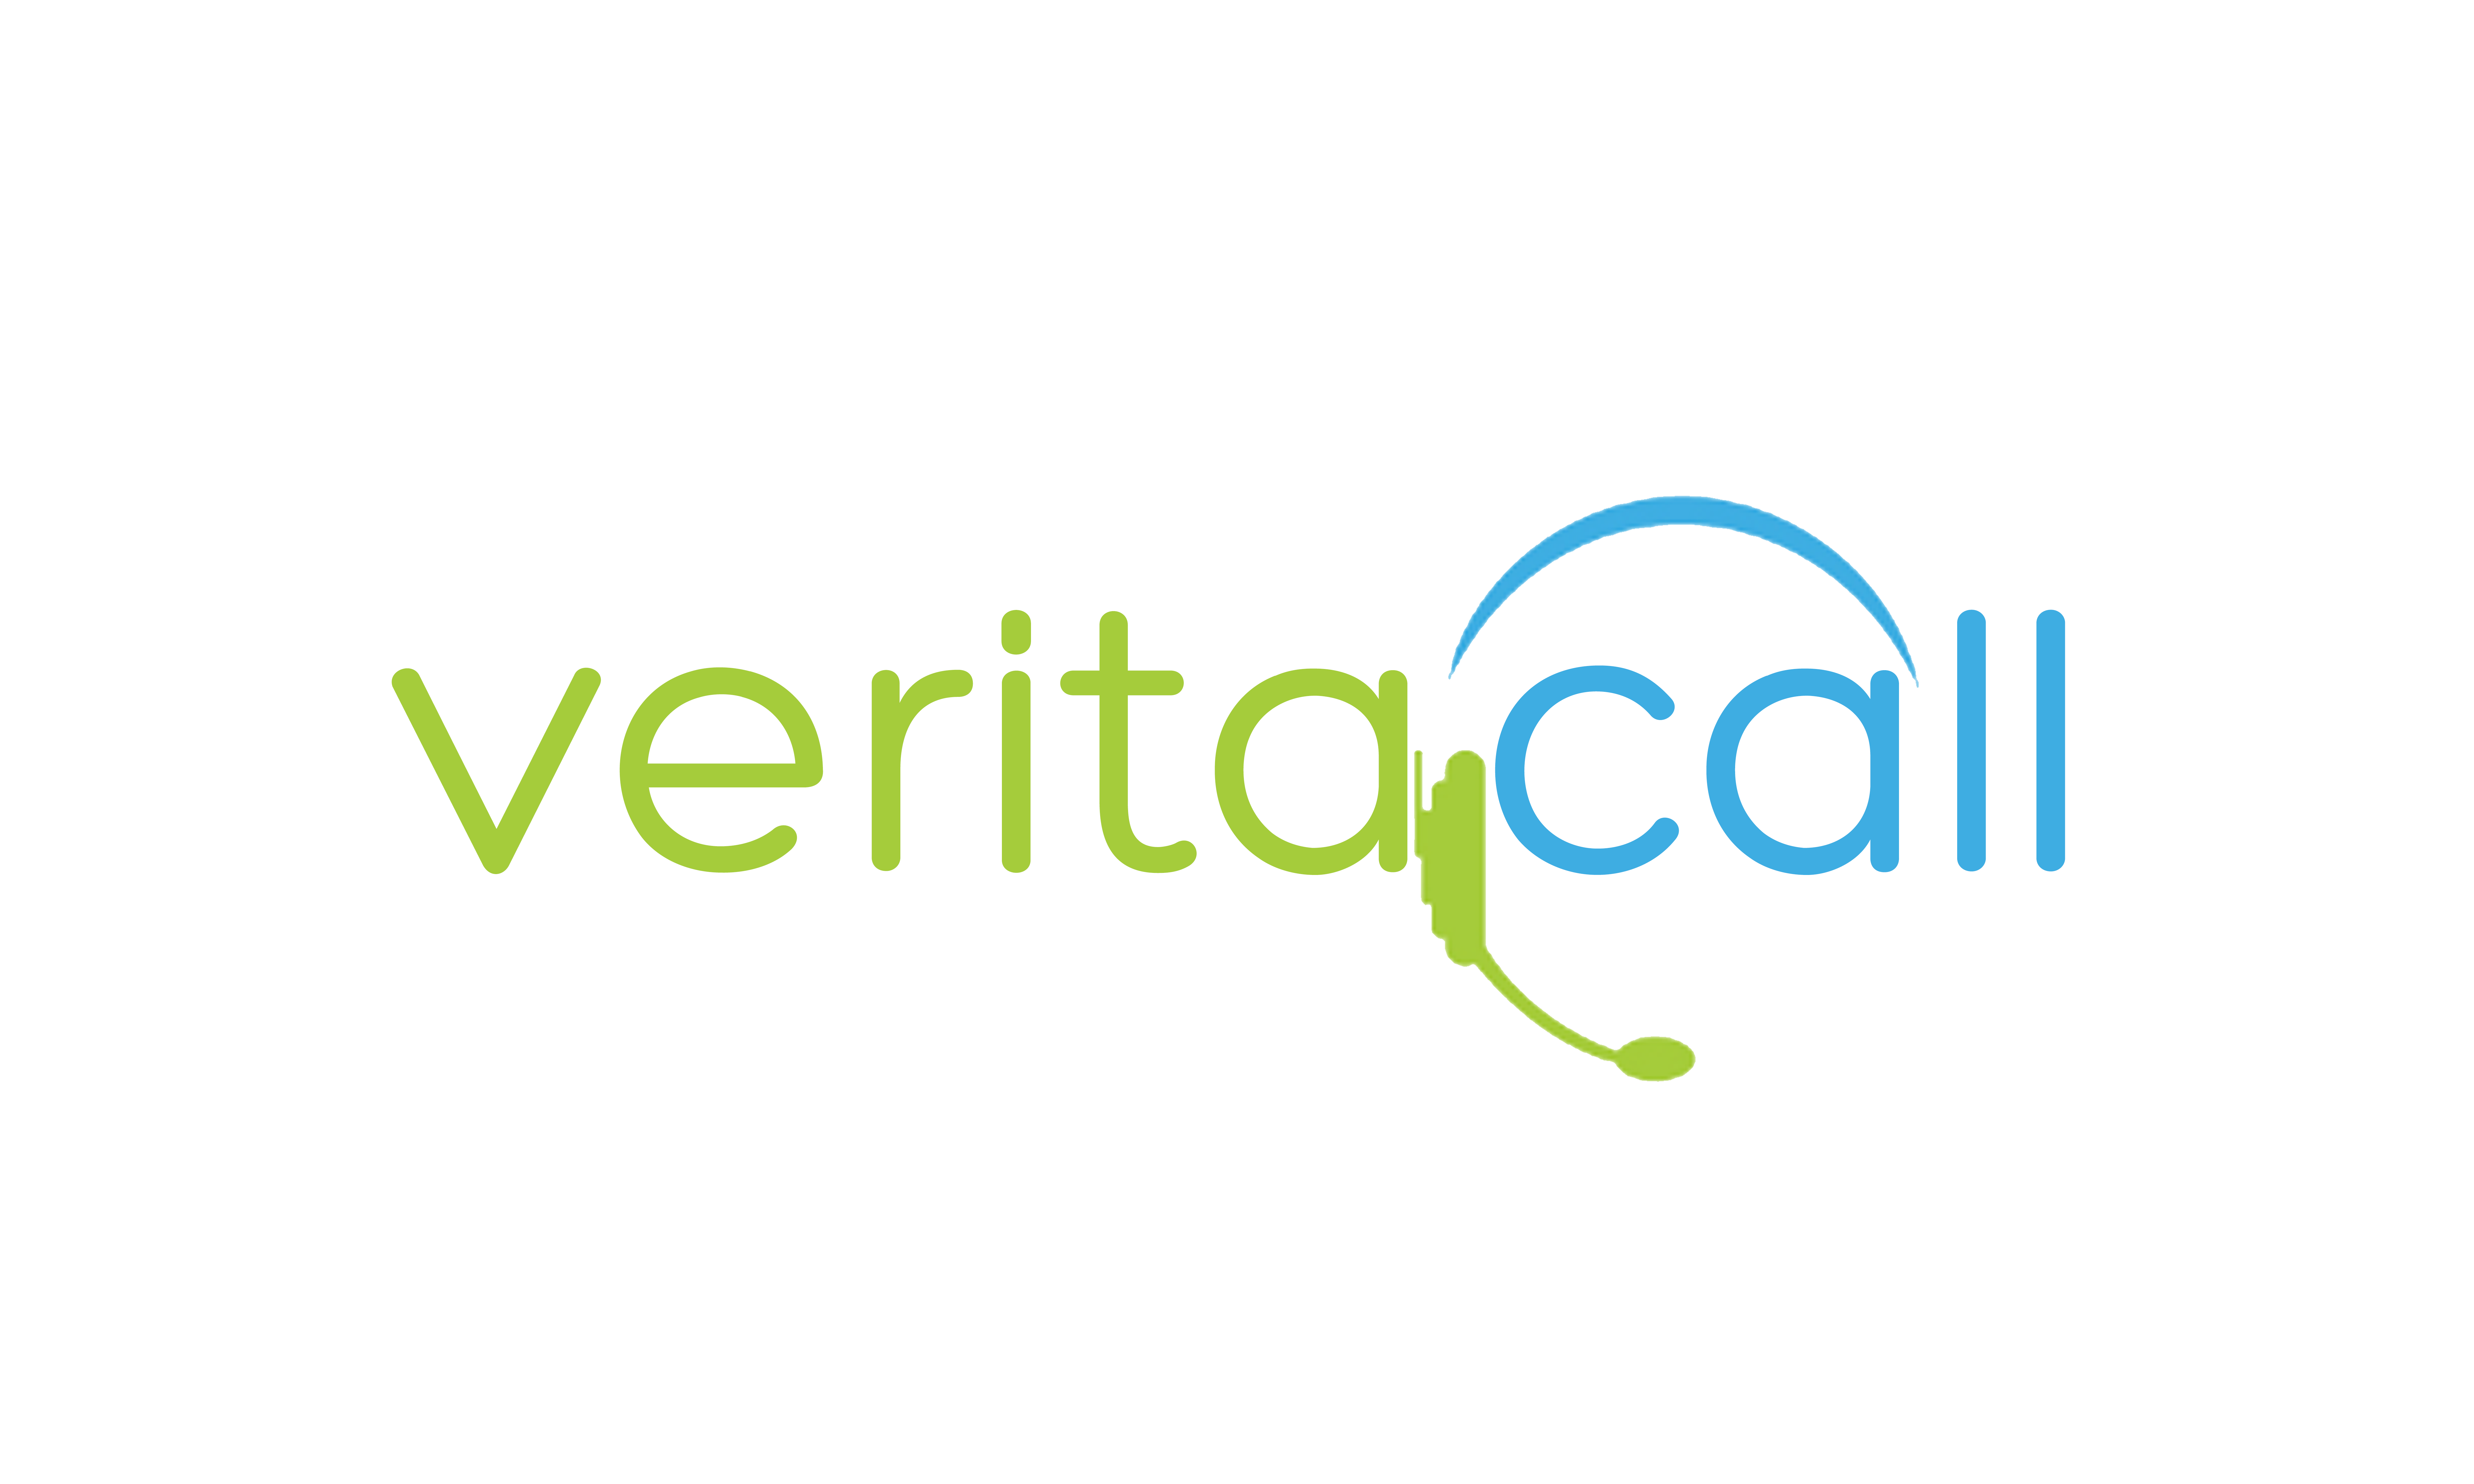 verita call